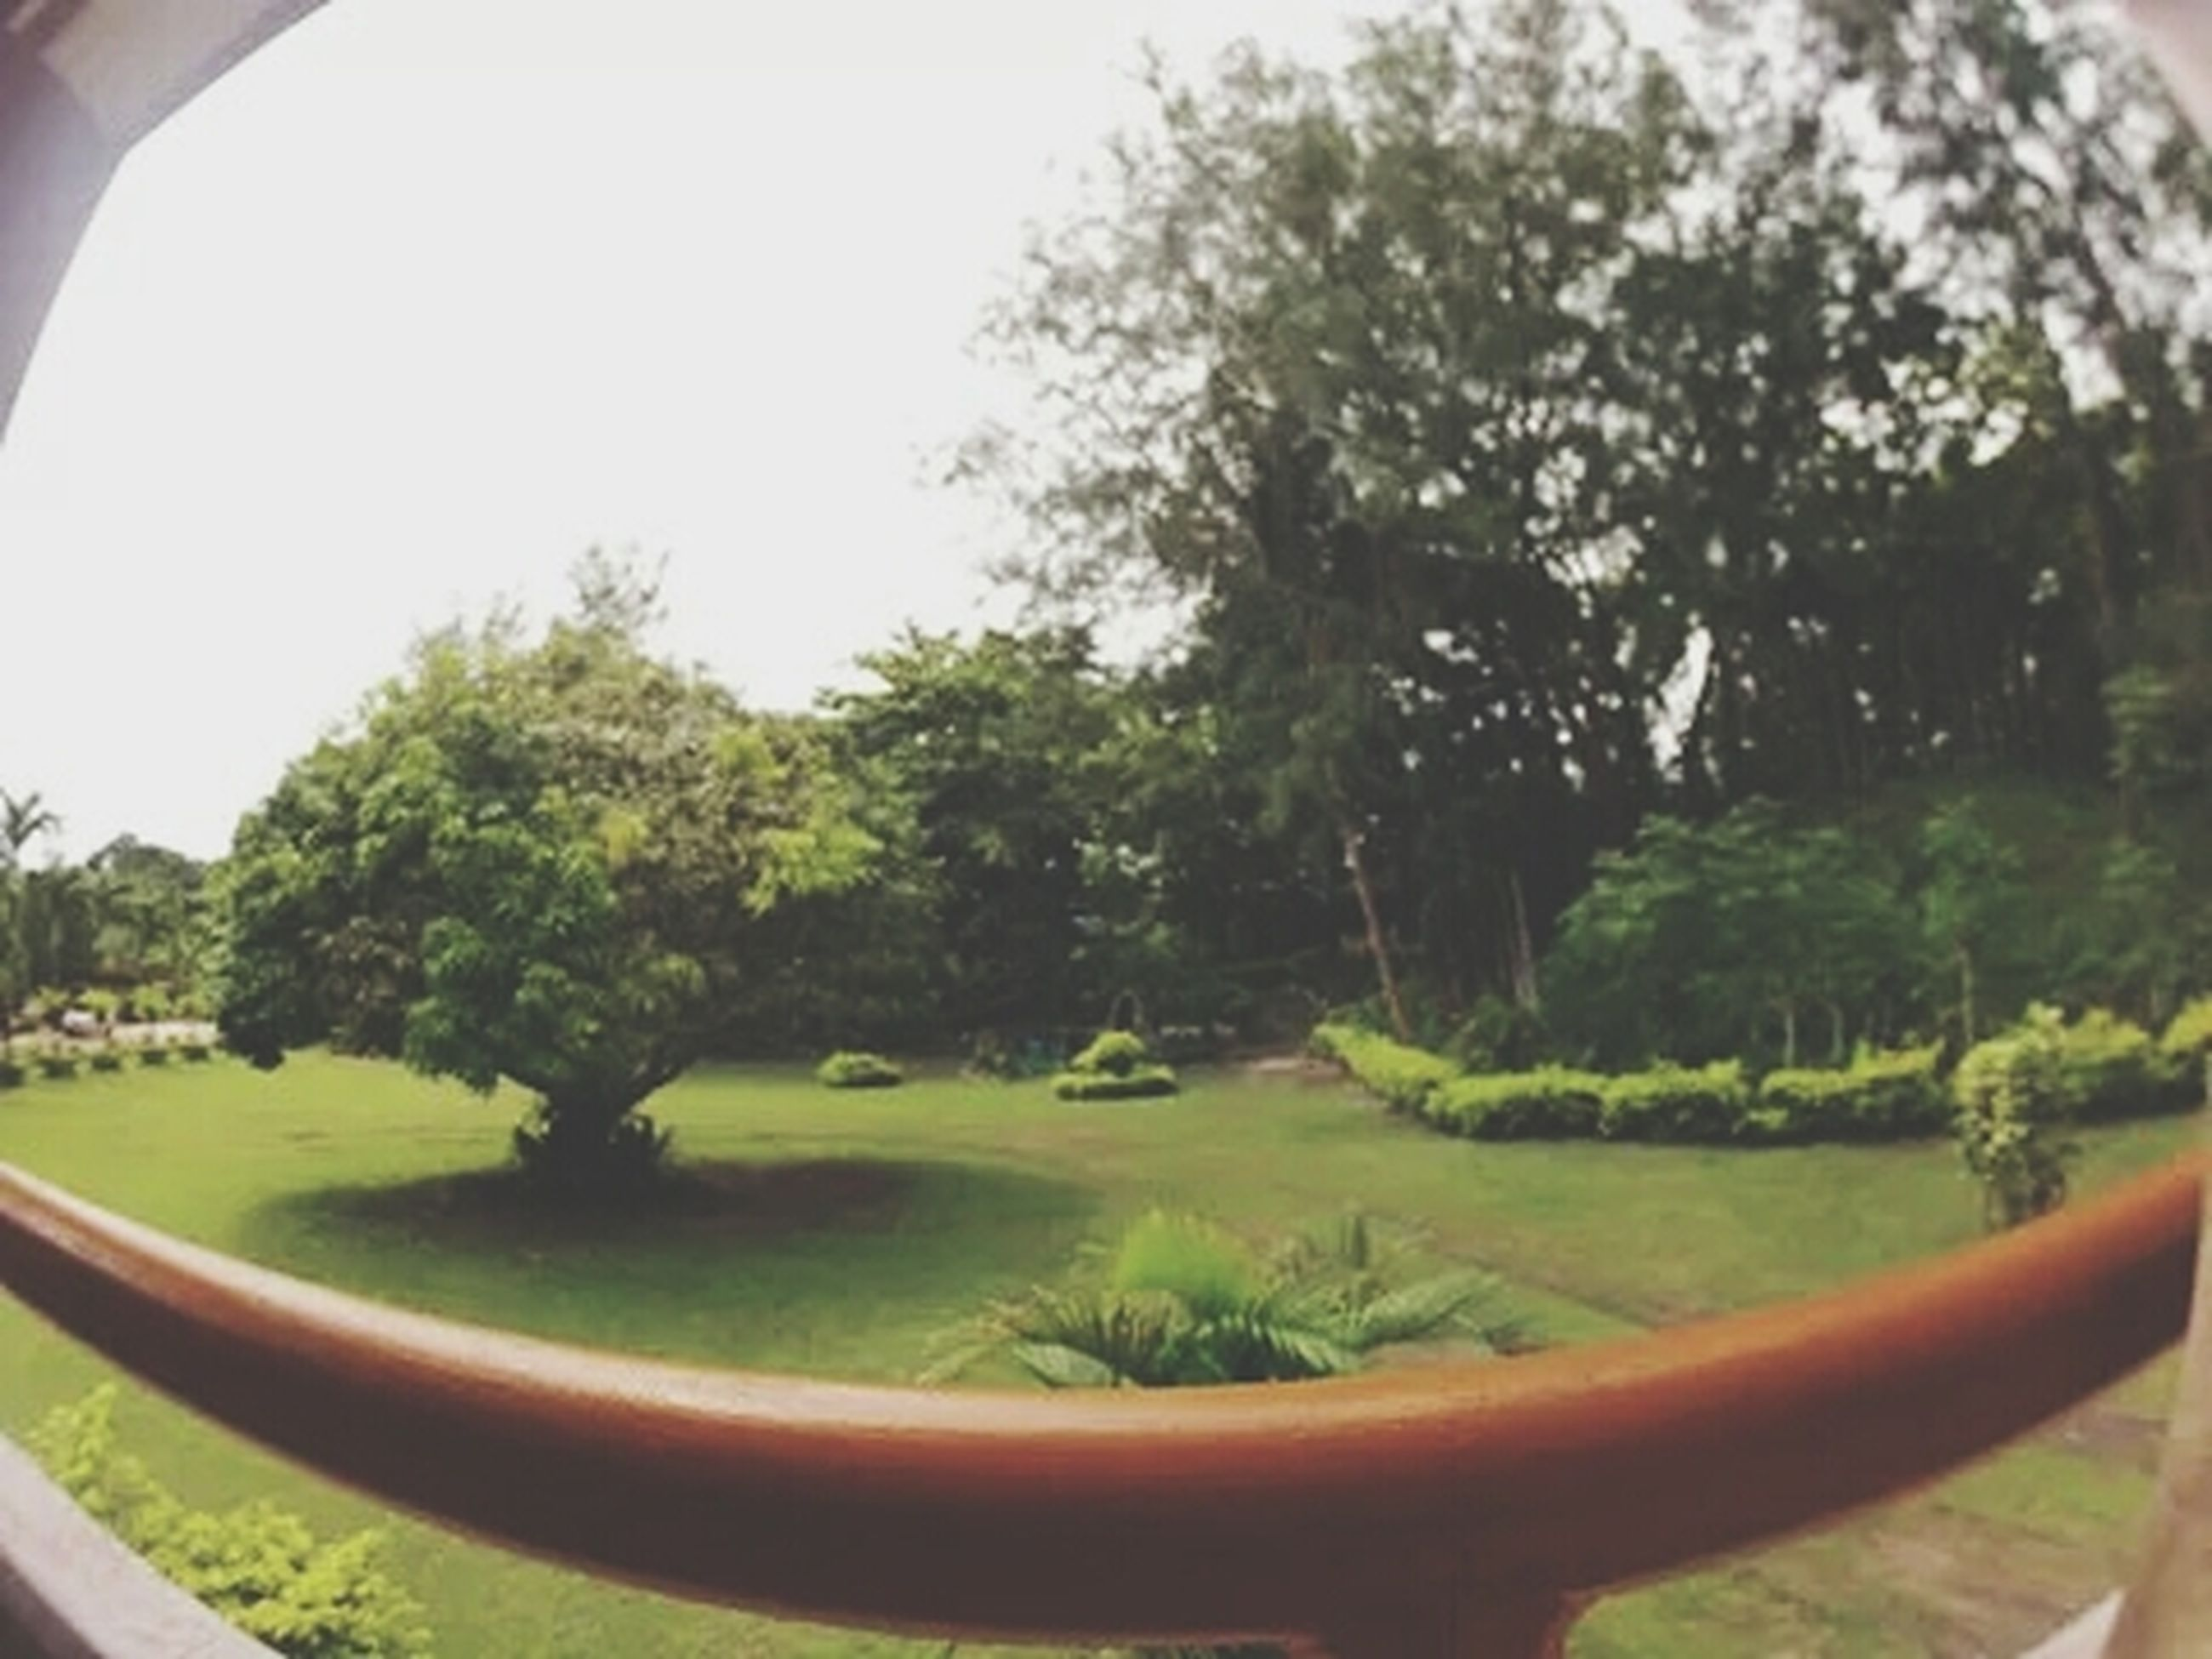 tree, green color, growth, grass, nature, tranquility, plant, park - man made space, beauty in nature, landscape, field, tranquil scene, green, scenics, day, water, lush foliage, sky, outdoors, sunlight